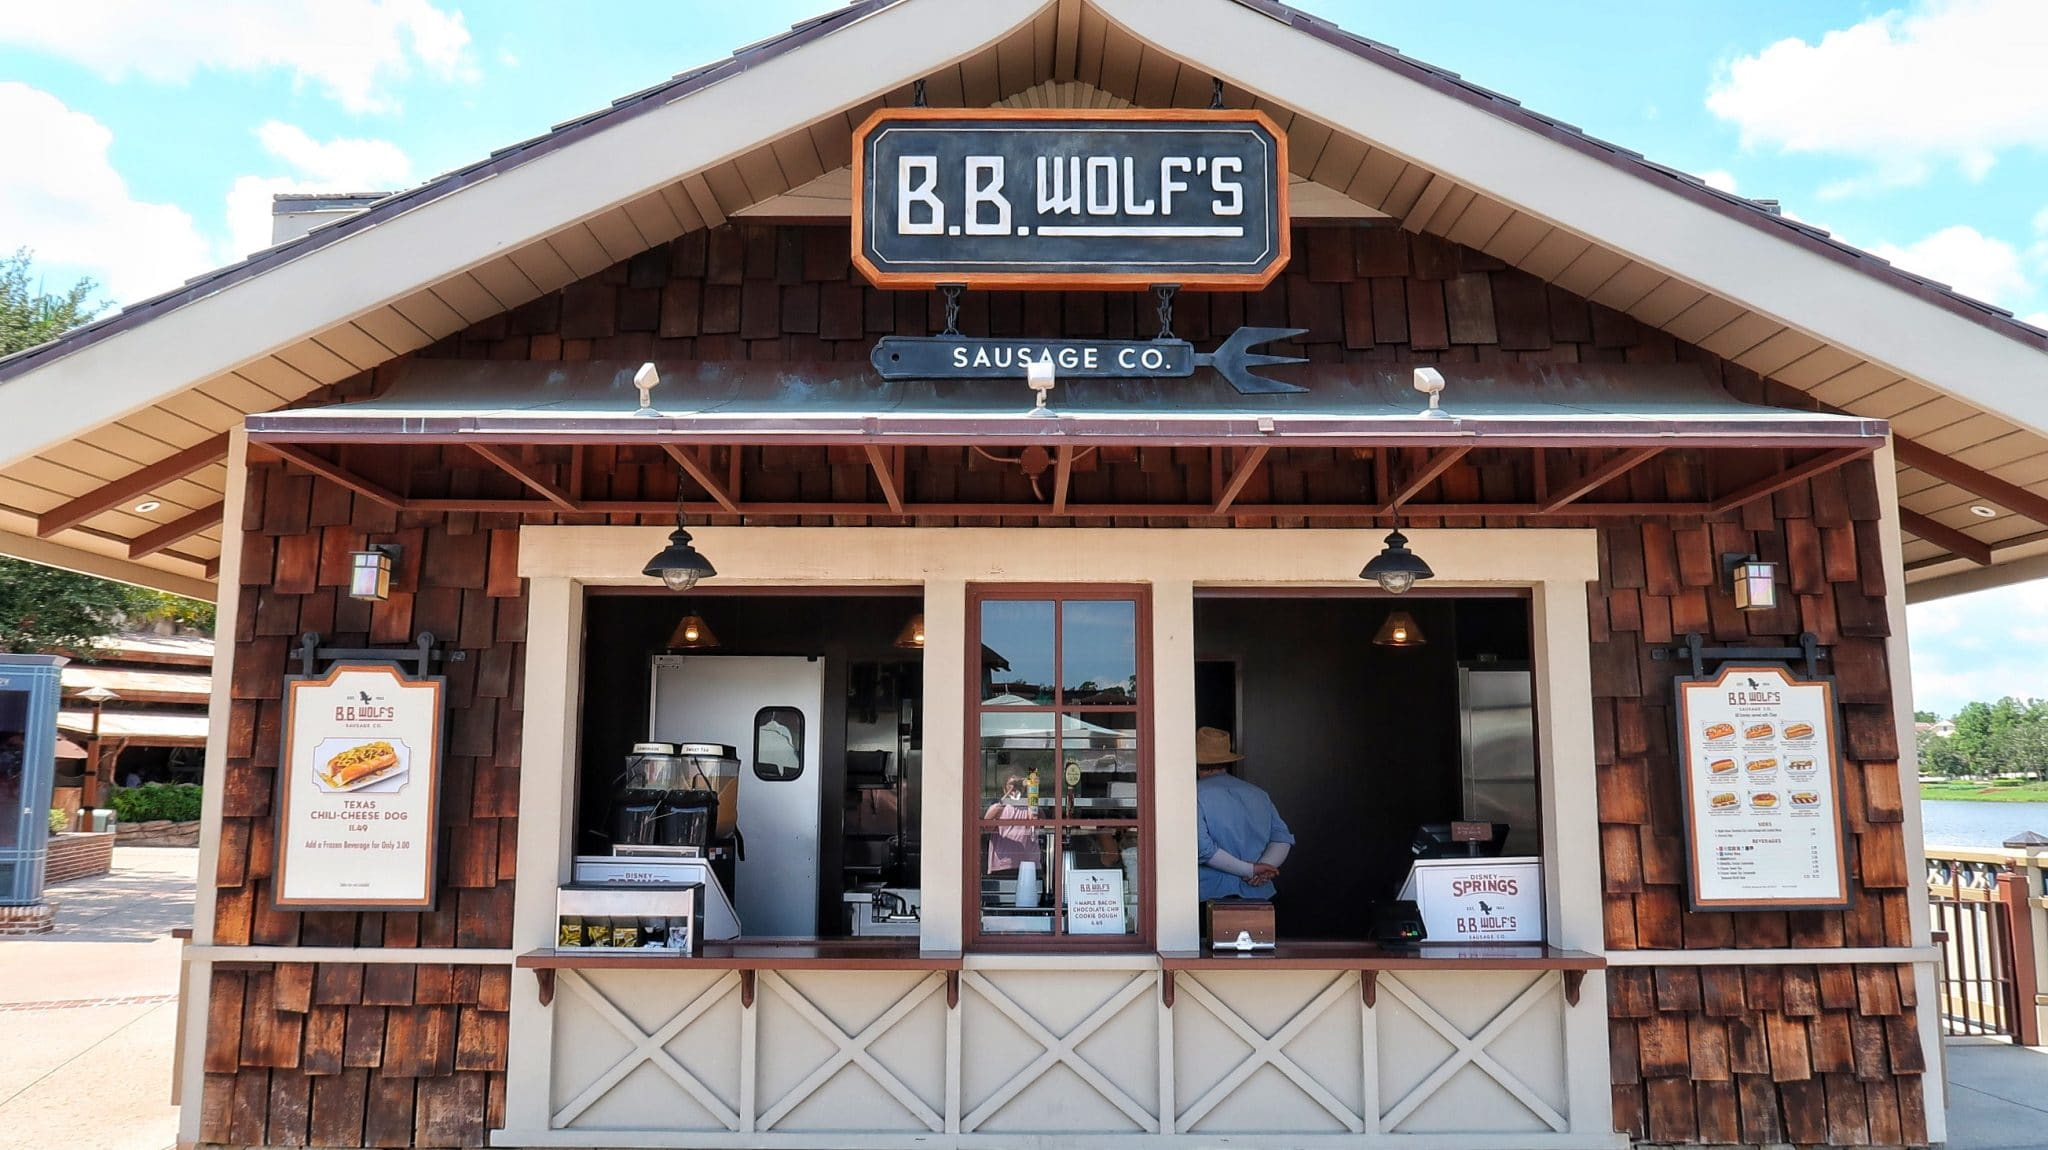 Vegan Bratwurst Sausage at B.B. Wolf's Sausage Co. in Disney Springs at Walt Disney World